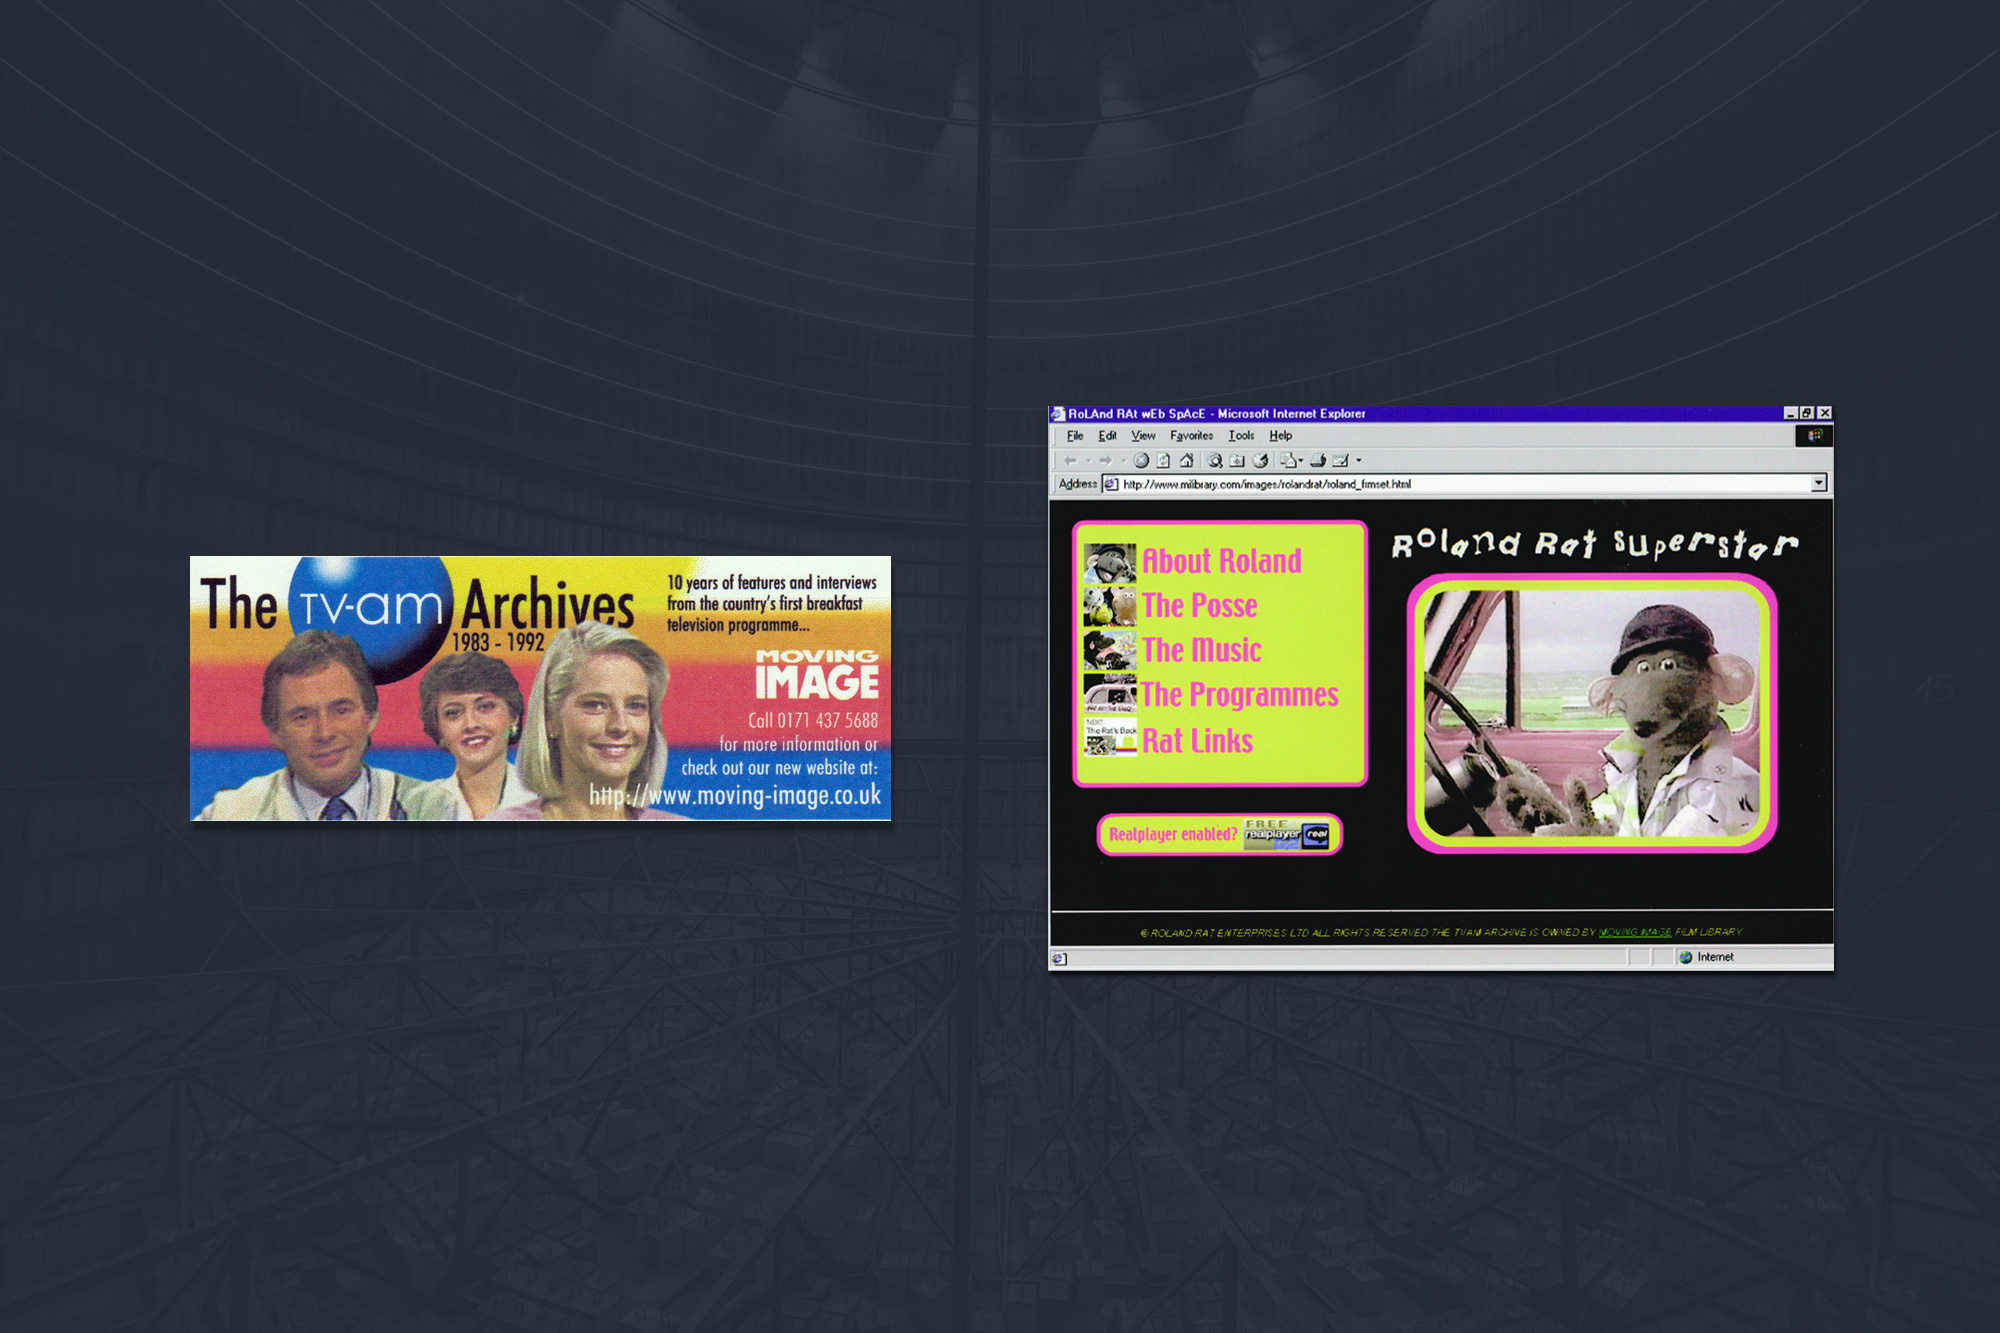 2. Flash and video streaming on a dial up modem - In amongst the Steenbeck film editing machines and broadcast tape formats sat the TV-am archive. It was time to experiment with digital video editing and Macromedia Flash – but it didn't support video in 1998. Getting RealPlayer video to work with Flash was a challenge. But challenges are good. Unfortunately Roland was disappointed – he threatened to sue unless the site was taken down. It was time to move with the times, from broadcast to digital media.